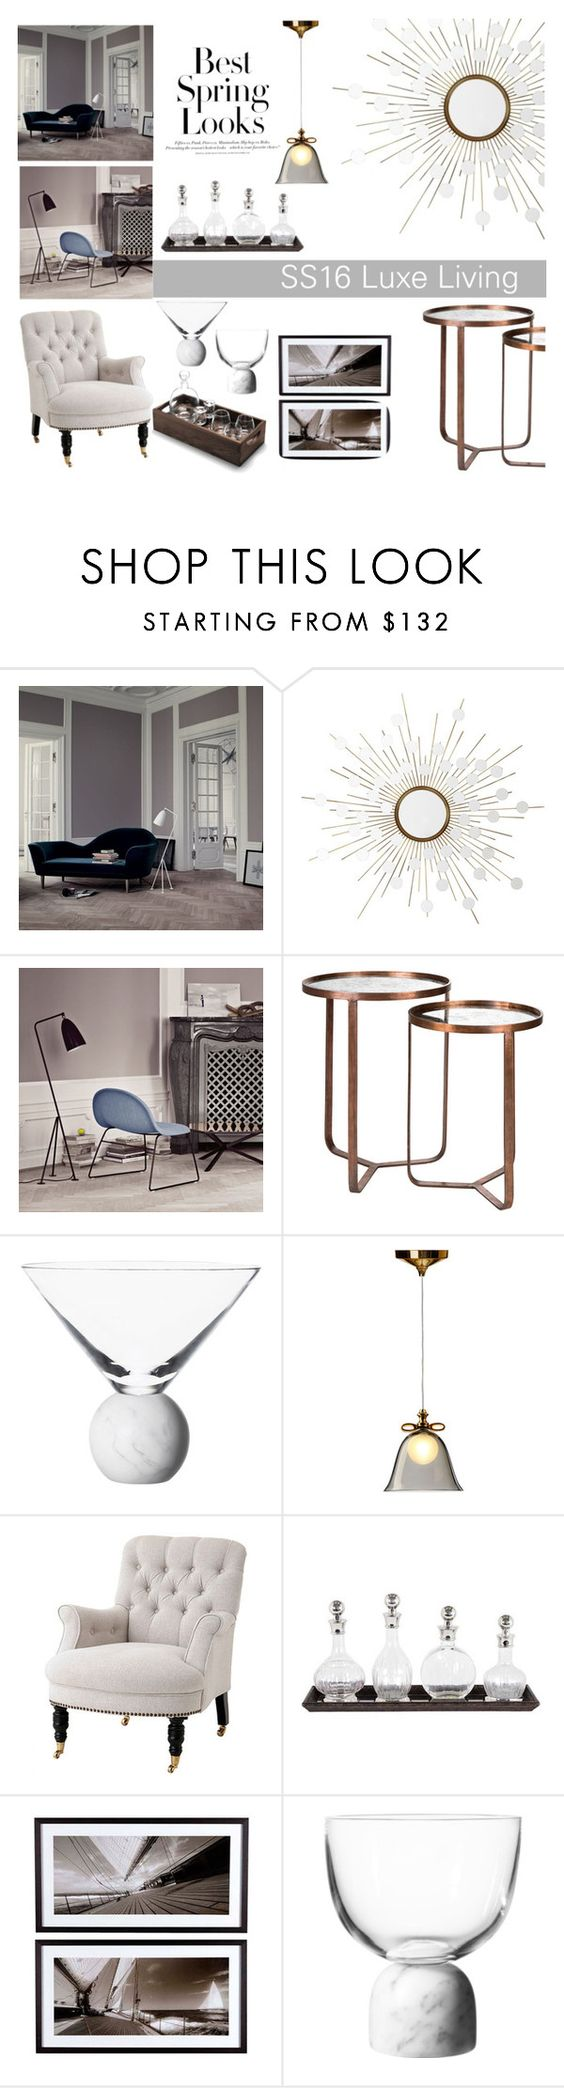 """Houseology SS16 Luxe Living"" by thehouseologists ❤ liked on Polyvore featuring interior, interiors, interior design, home, home decor, interior decorating, Gubi, Eichholtz, H&M and Lee Broom"